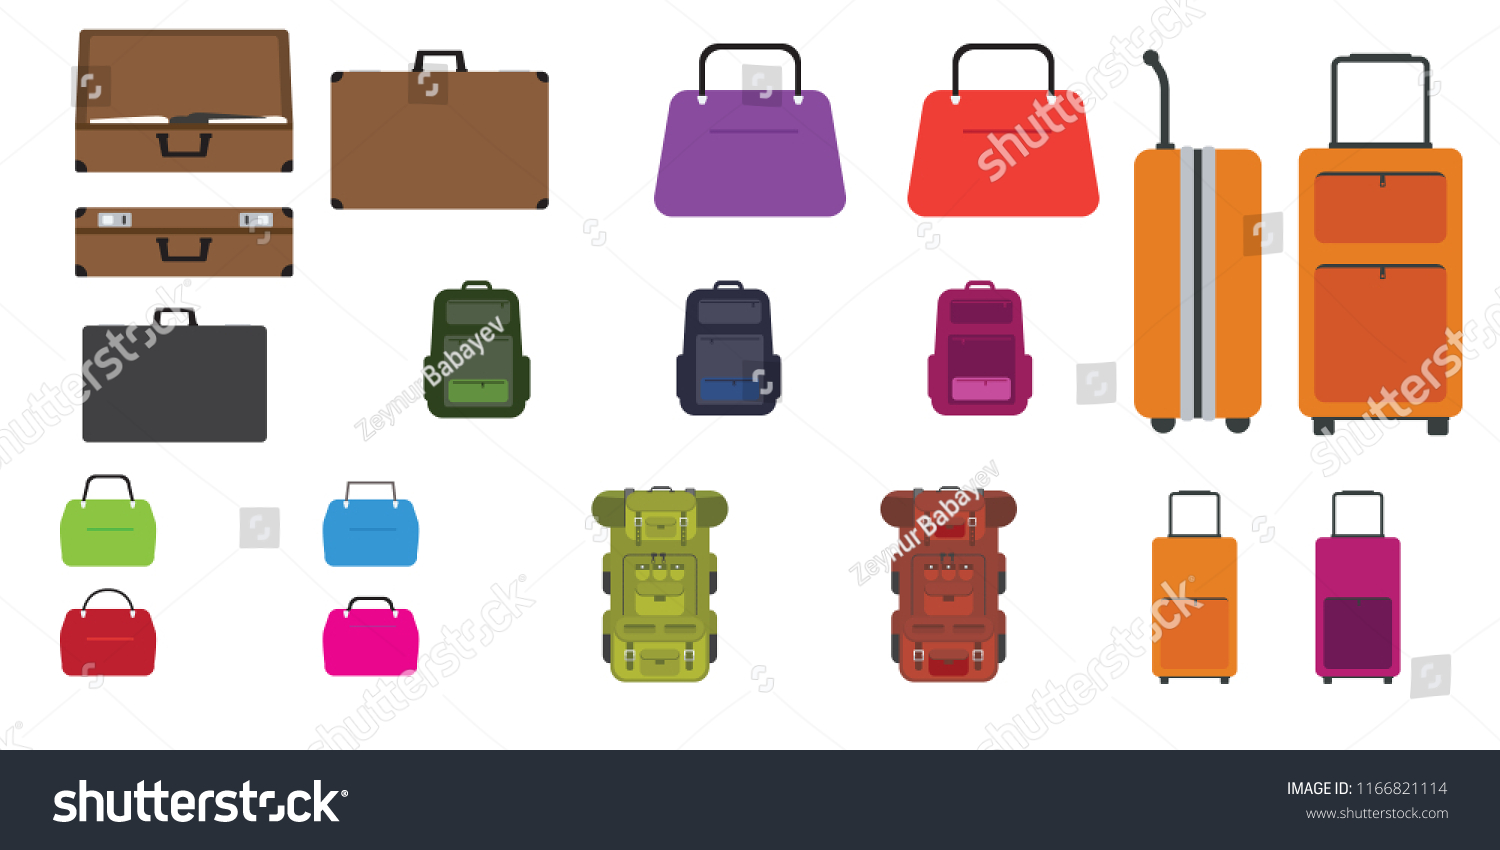 Set of bags. Travel bag, rucksack, woman bag and other bags with Flat  design style. Vector illustration. - Vector c18cdb653a